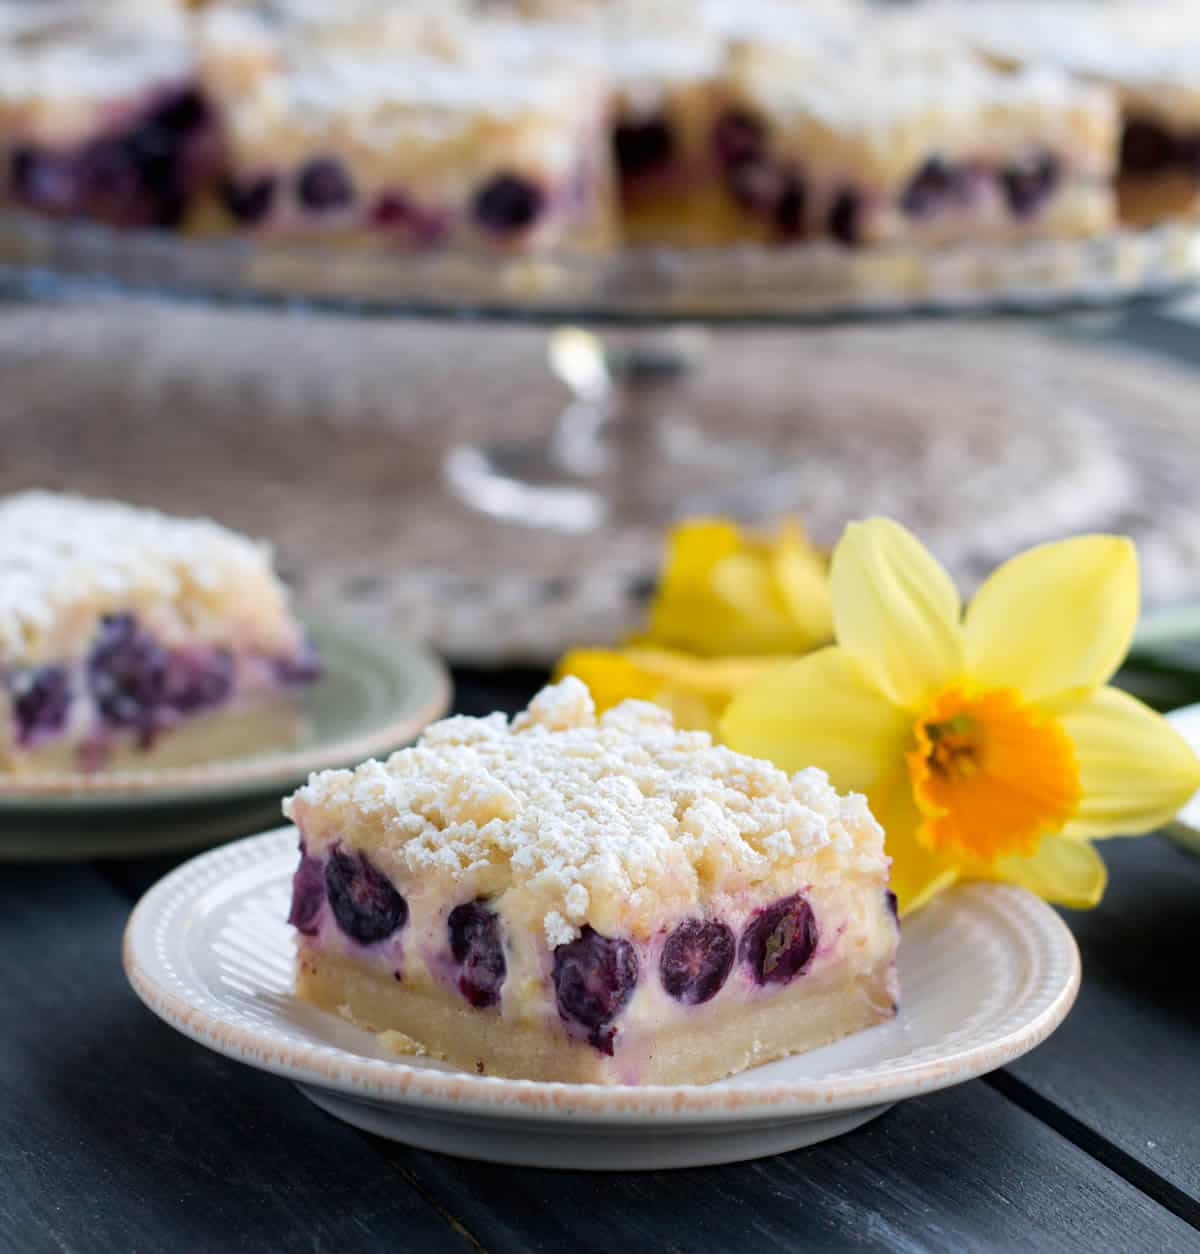 Lemon Blueberry Shortbread Bars. A thick, soft shortbread crust is topped with a lemony custard, fresh blueberries and a lemon crumb topping!